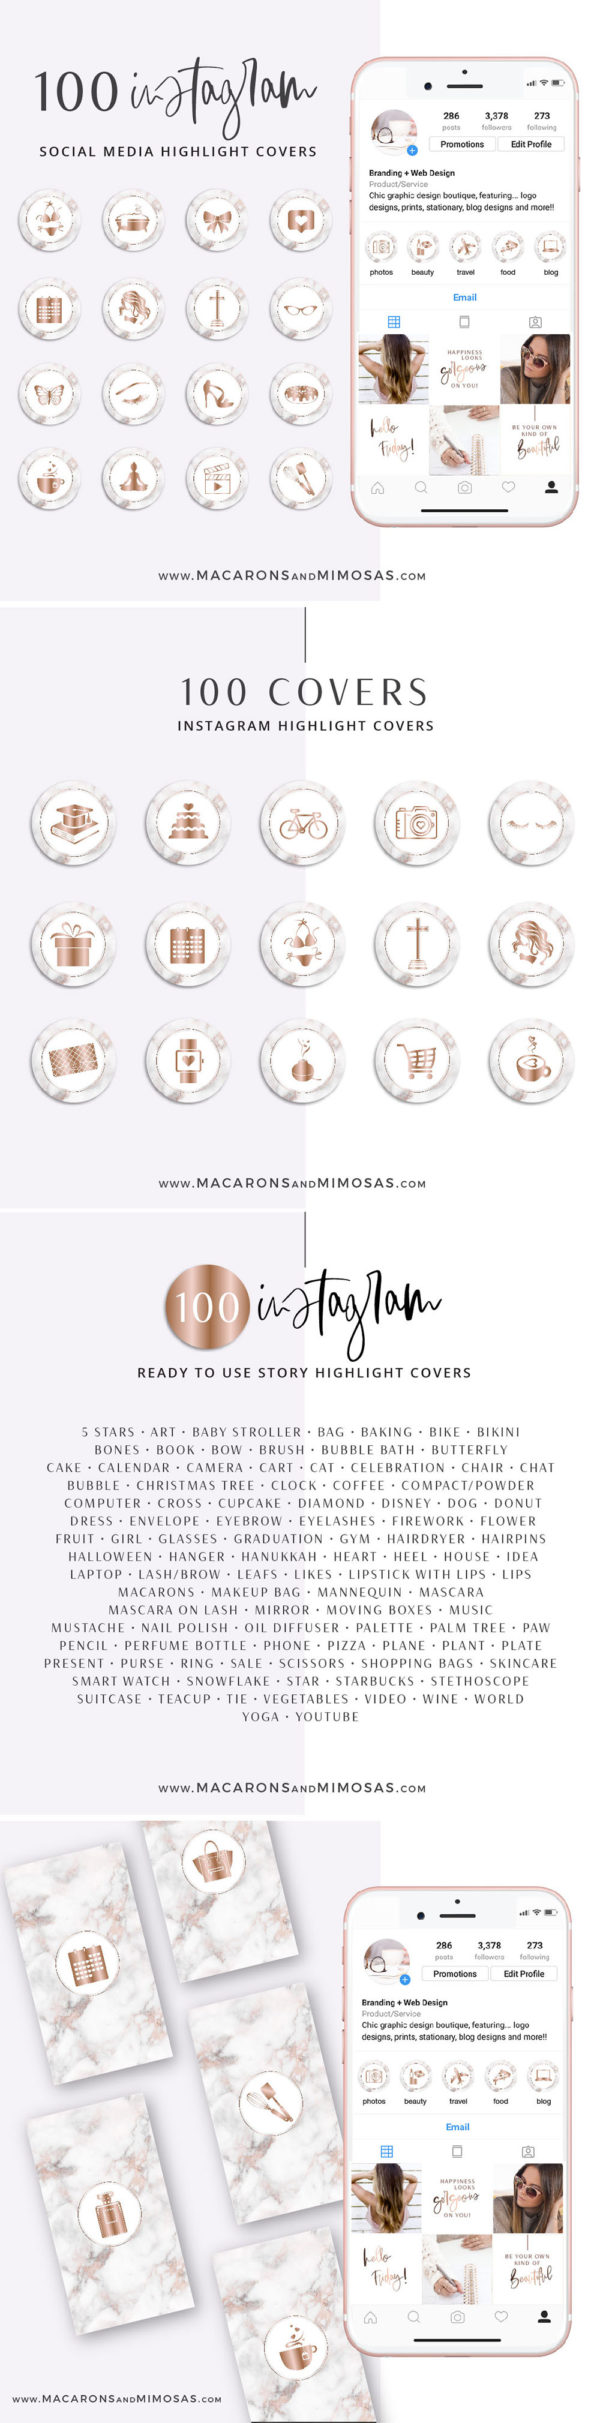 100 Instagram Story Highlights Icons, Rose Gold Marble Instagram Story Template Bundle, Instagram Highlights, Fashion, Beauty, Lifestyle